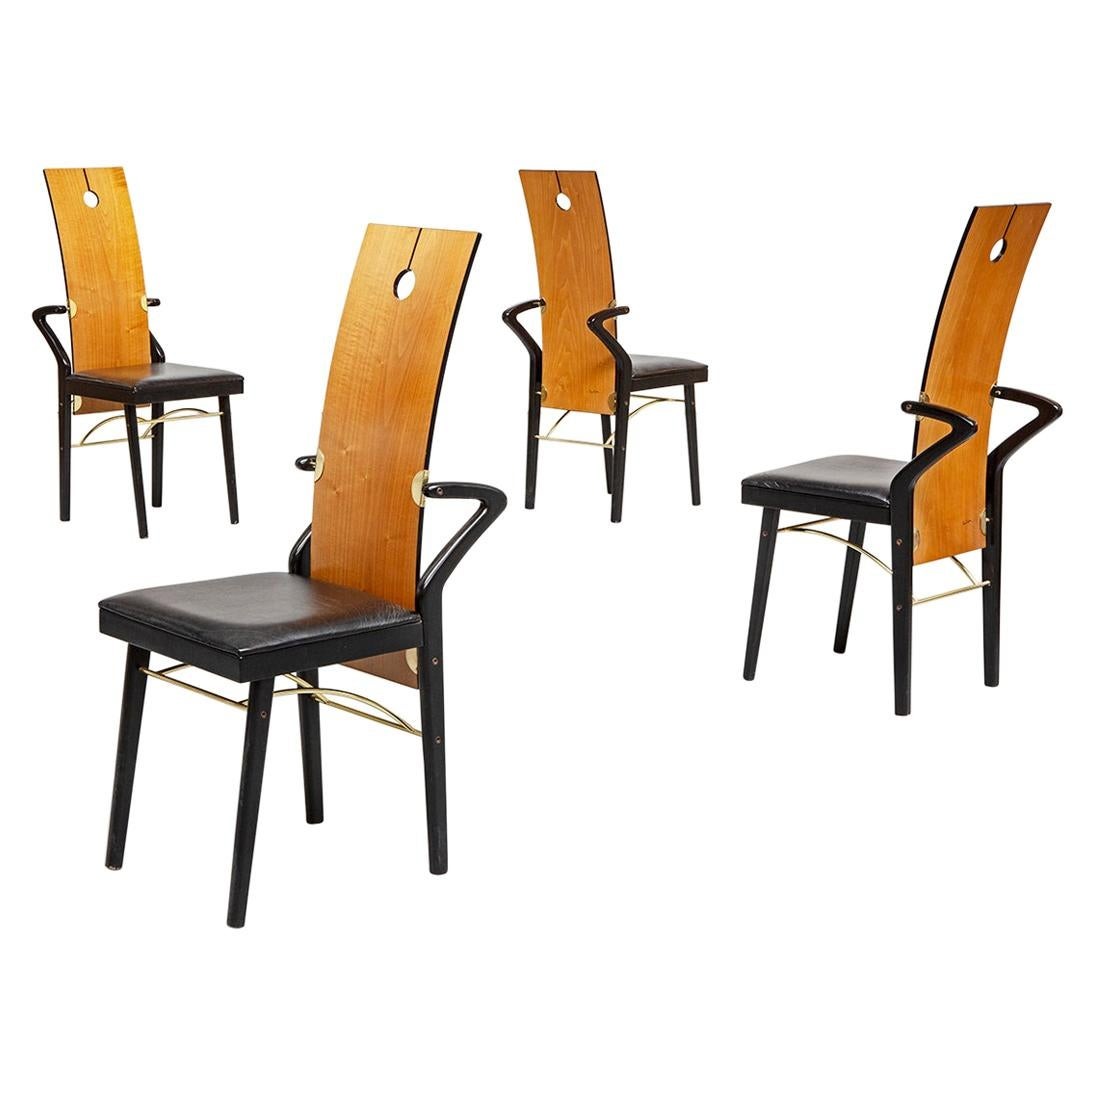 Dining Chairs by Pierre Cardin, 1980s